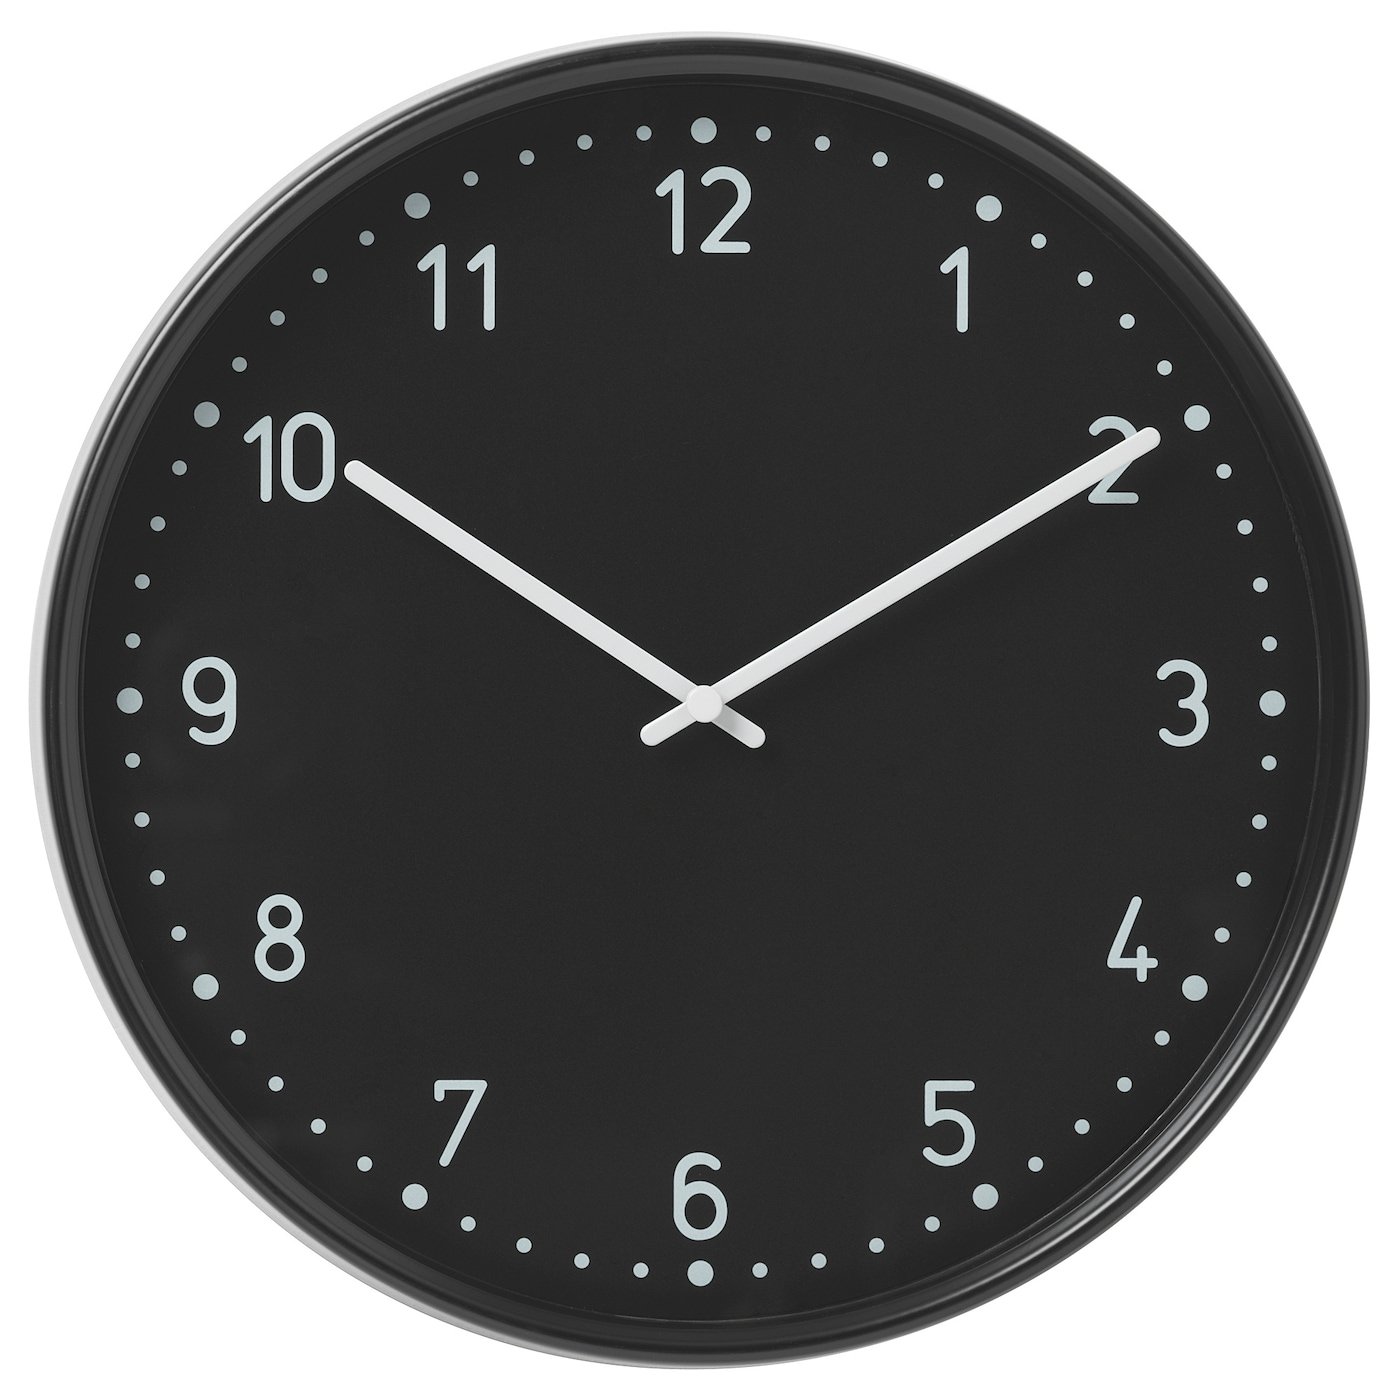 IKEA BONDIS wall clock Highly accurate at keeping time as it is fitted with a quartz movement.